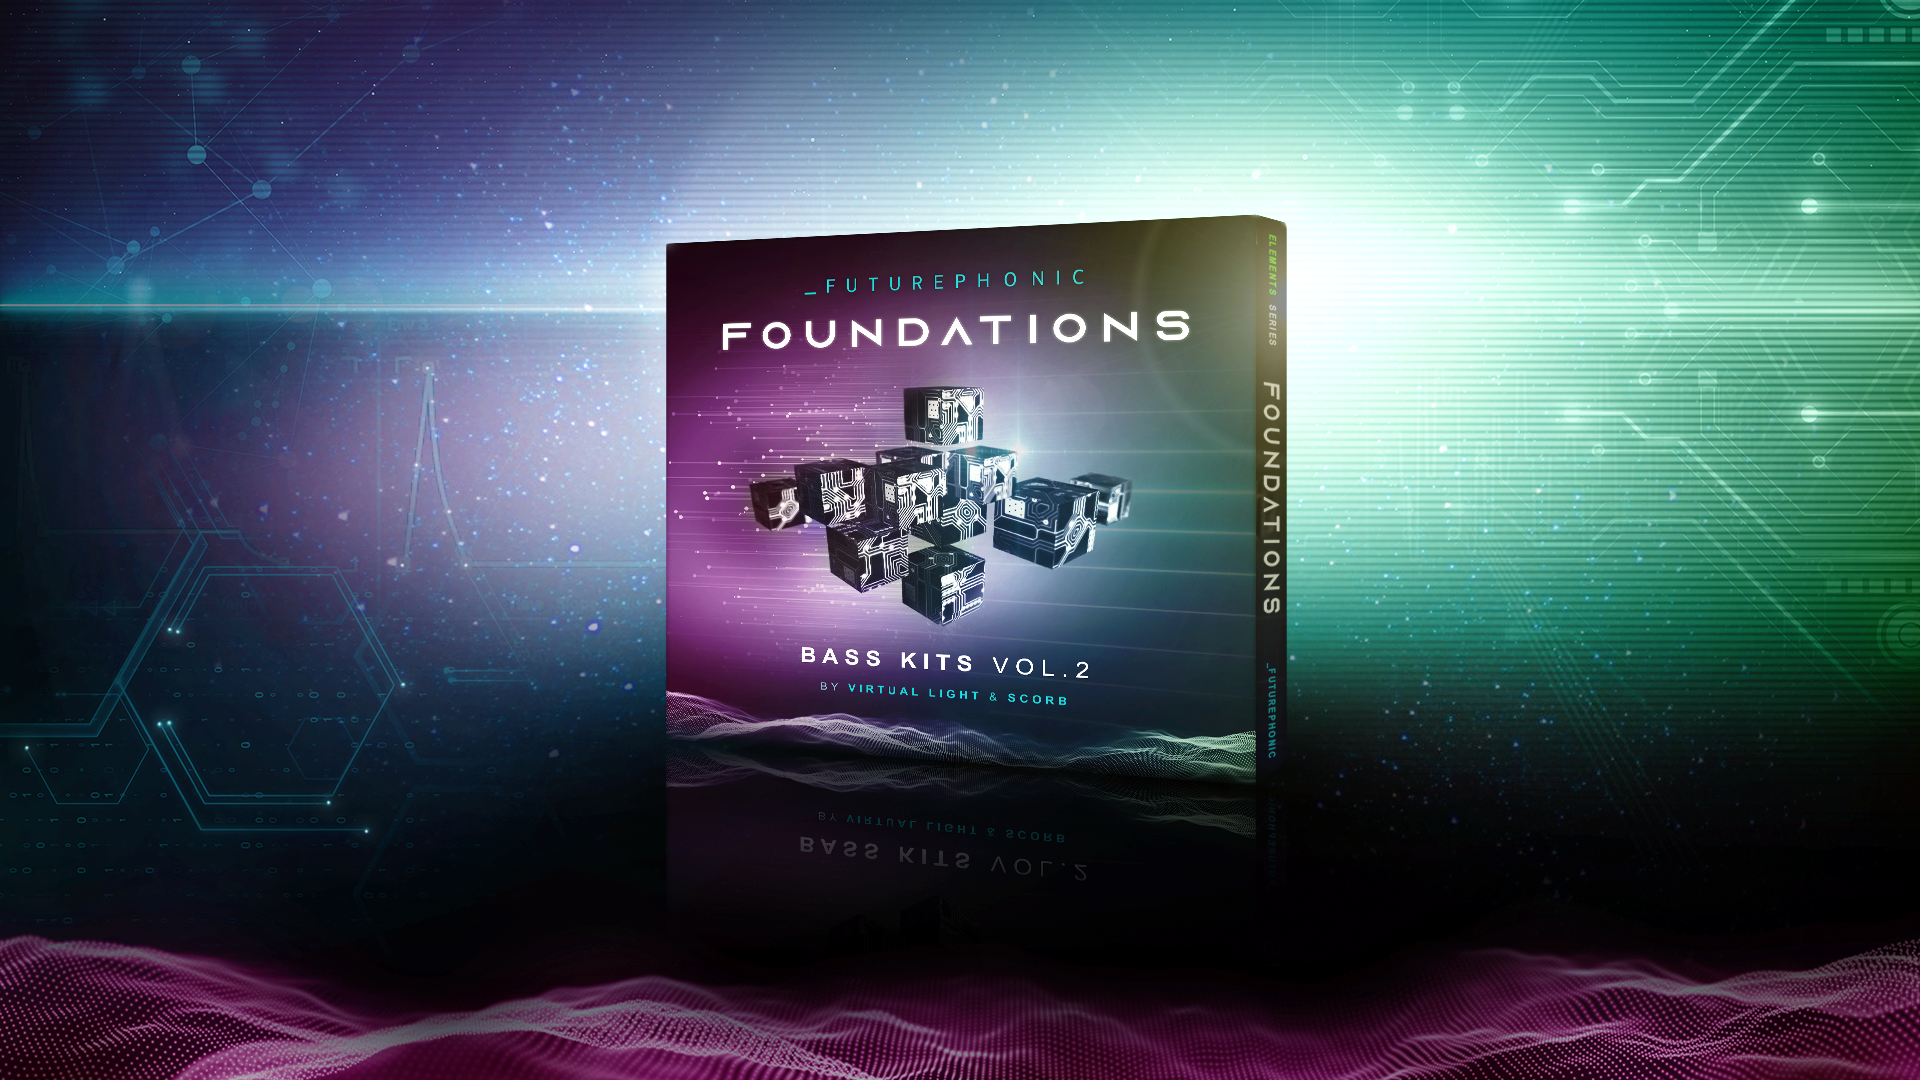 Foundations - Bass Kits Vol. 2 by Virtual Light and Scorb